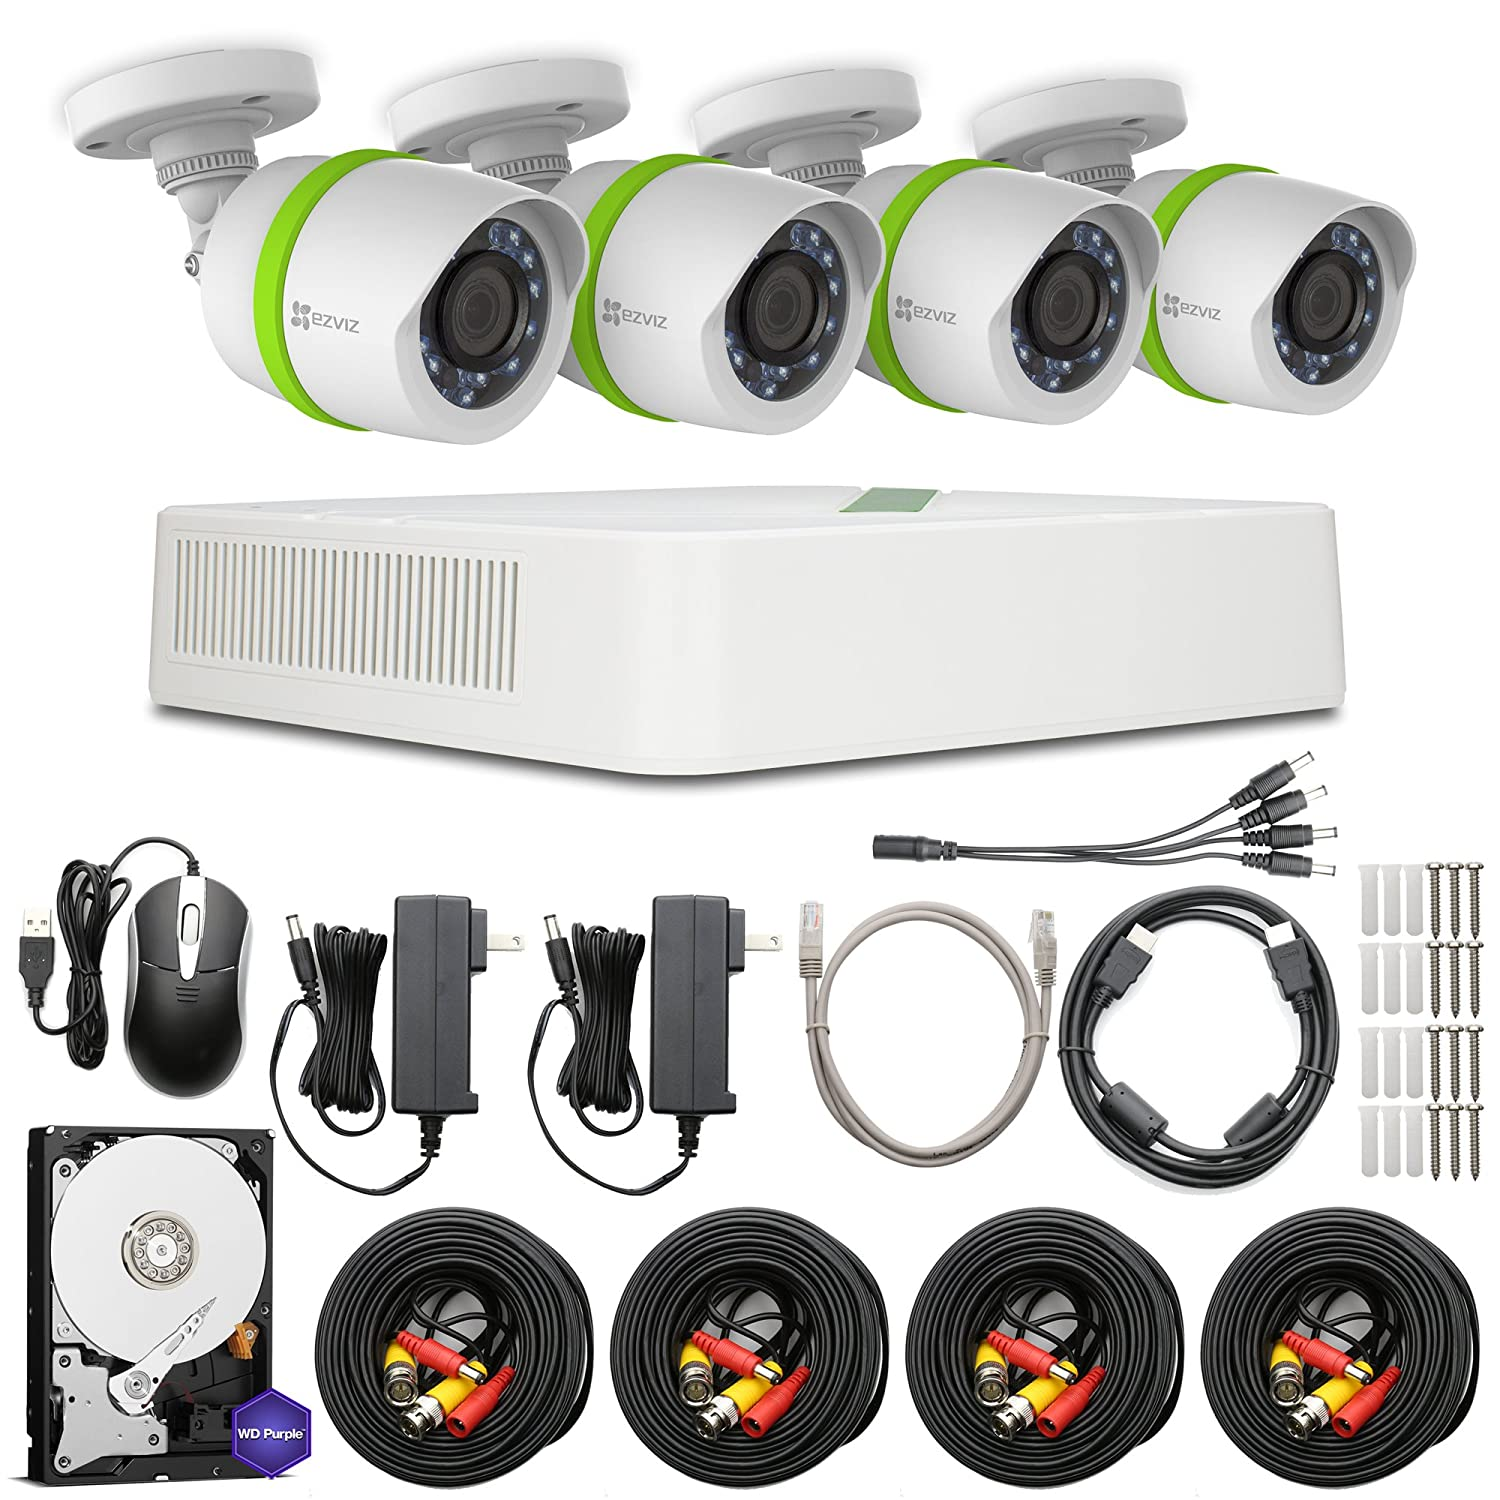 Ezviz Full Hd 1080p Outdoor Surveillance System 4 Security Camera Cable Wire Diagram Weatherproof Cameras Channel 1tb Dvr Storage 100ft Night Vision